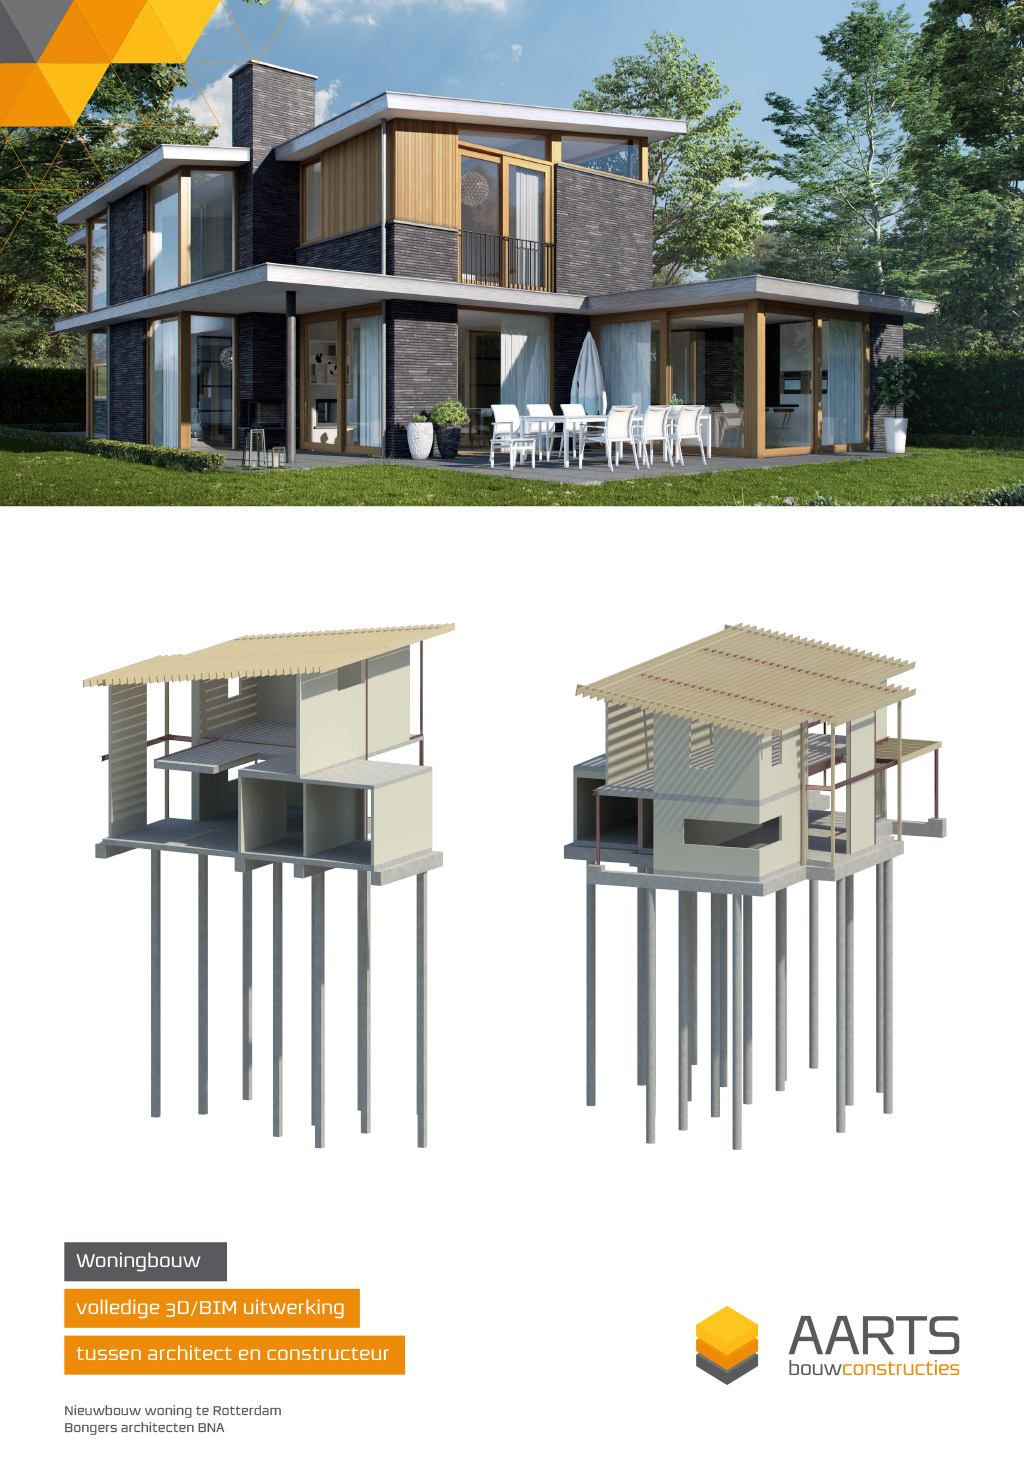 Woning - Close-up 3D model